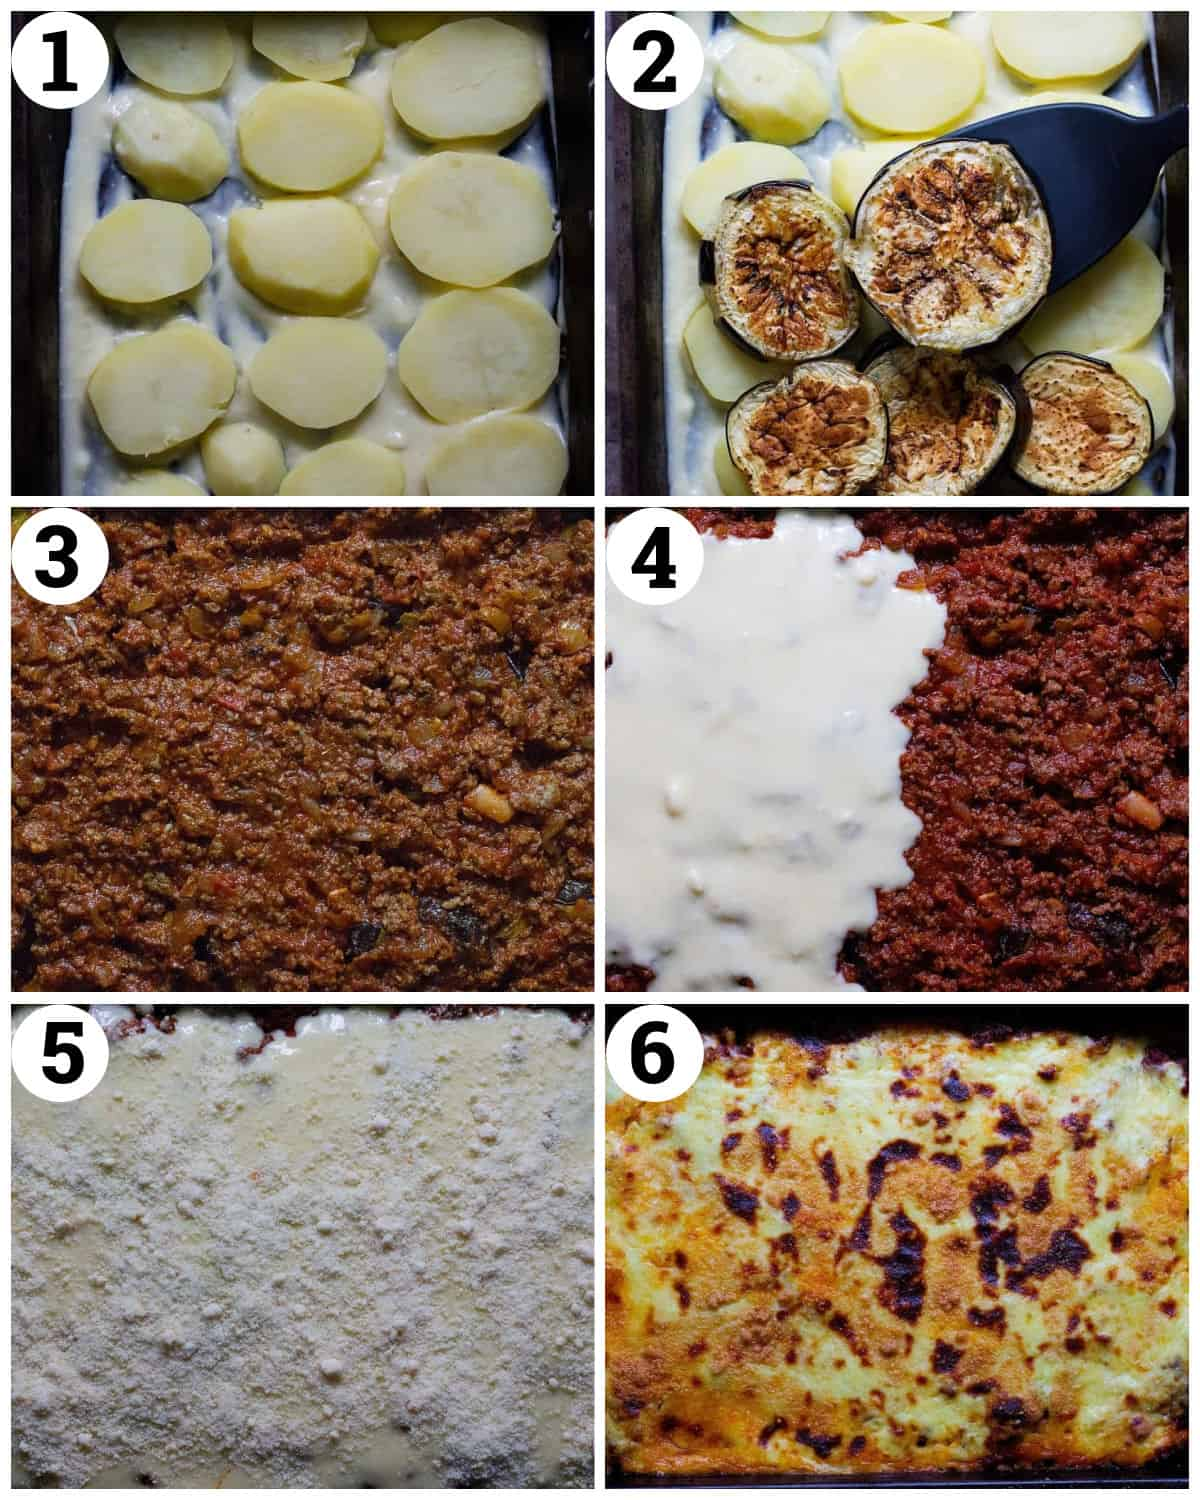 place the potatoes, add the eggplant and the sauce top with bechamel and parmesan then bake.